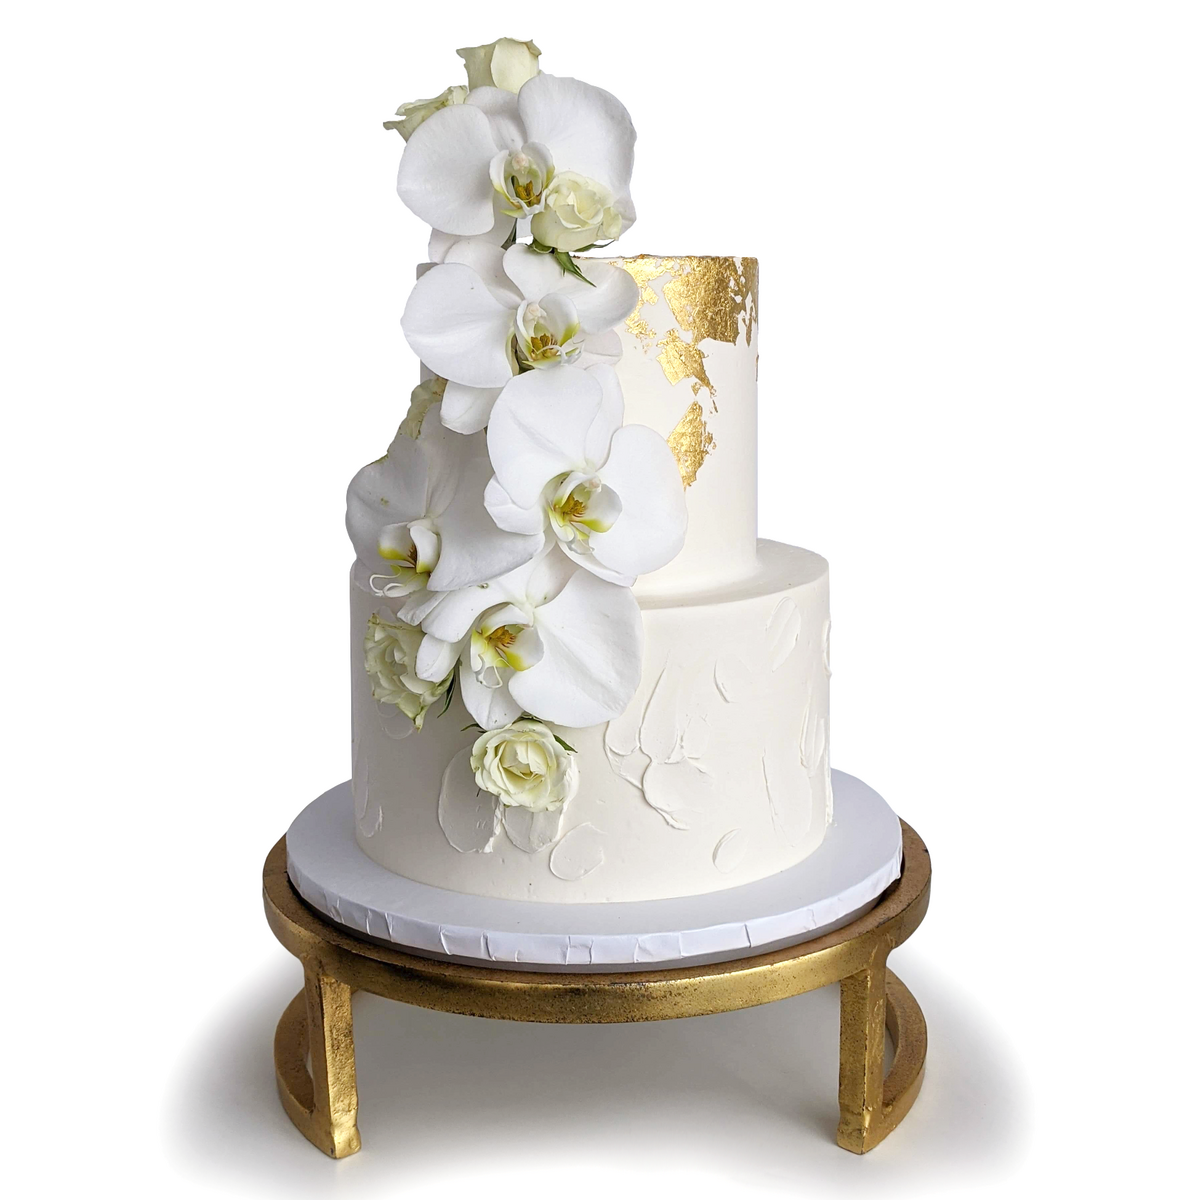 Whippt Kitchen - wedding cake Orchids Oct 2020 2